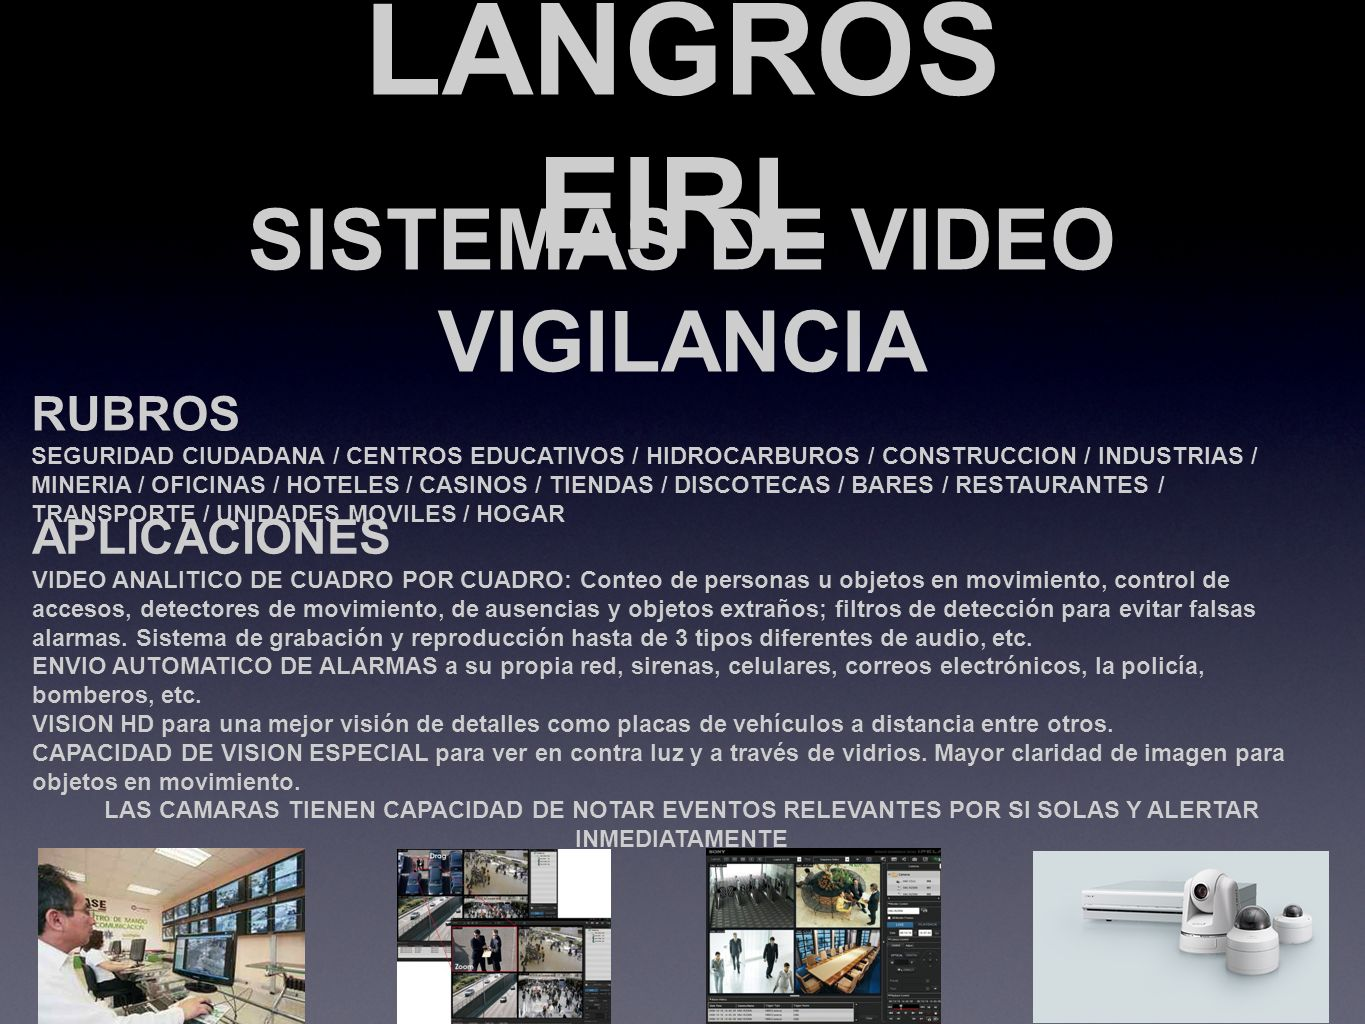 SISTEMAS DE VIDEO VIGILANCIA